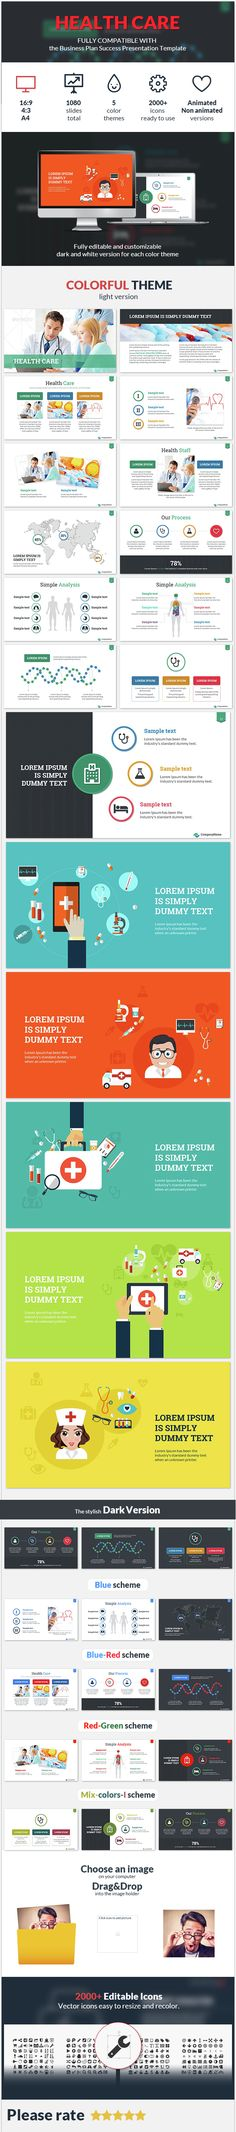 Health Care Success Presentation Template - #Business #PowerPoint #Templates Download here: https://graphicriver.net/item/health-care-success-presentation-template/14942266?ref=alena994